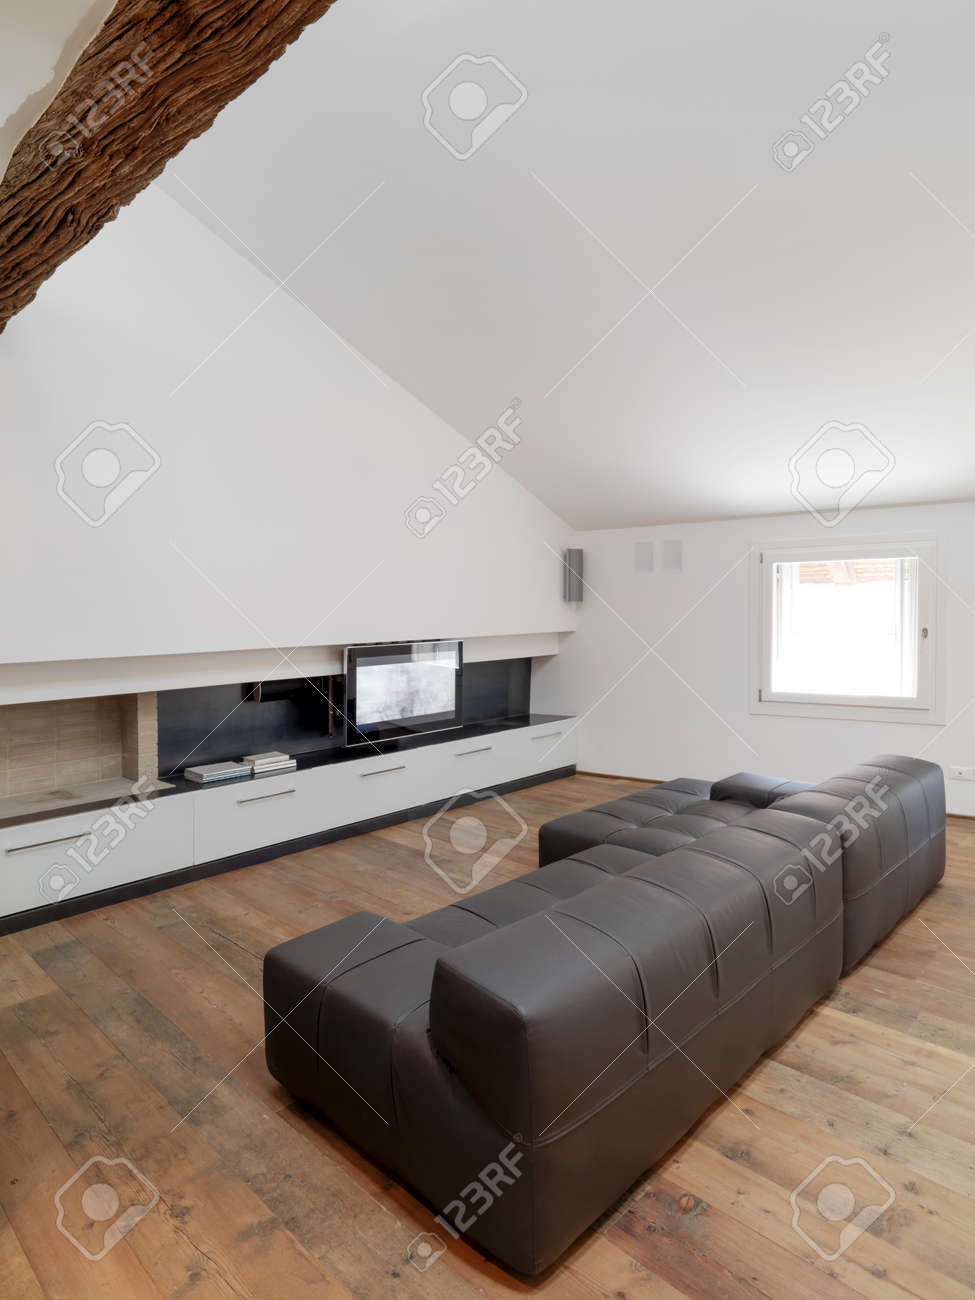 Brown Leather Sofa In The Attic Room With Television And Wood Floor For  Modern Living Room